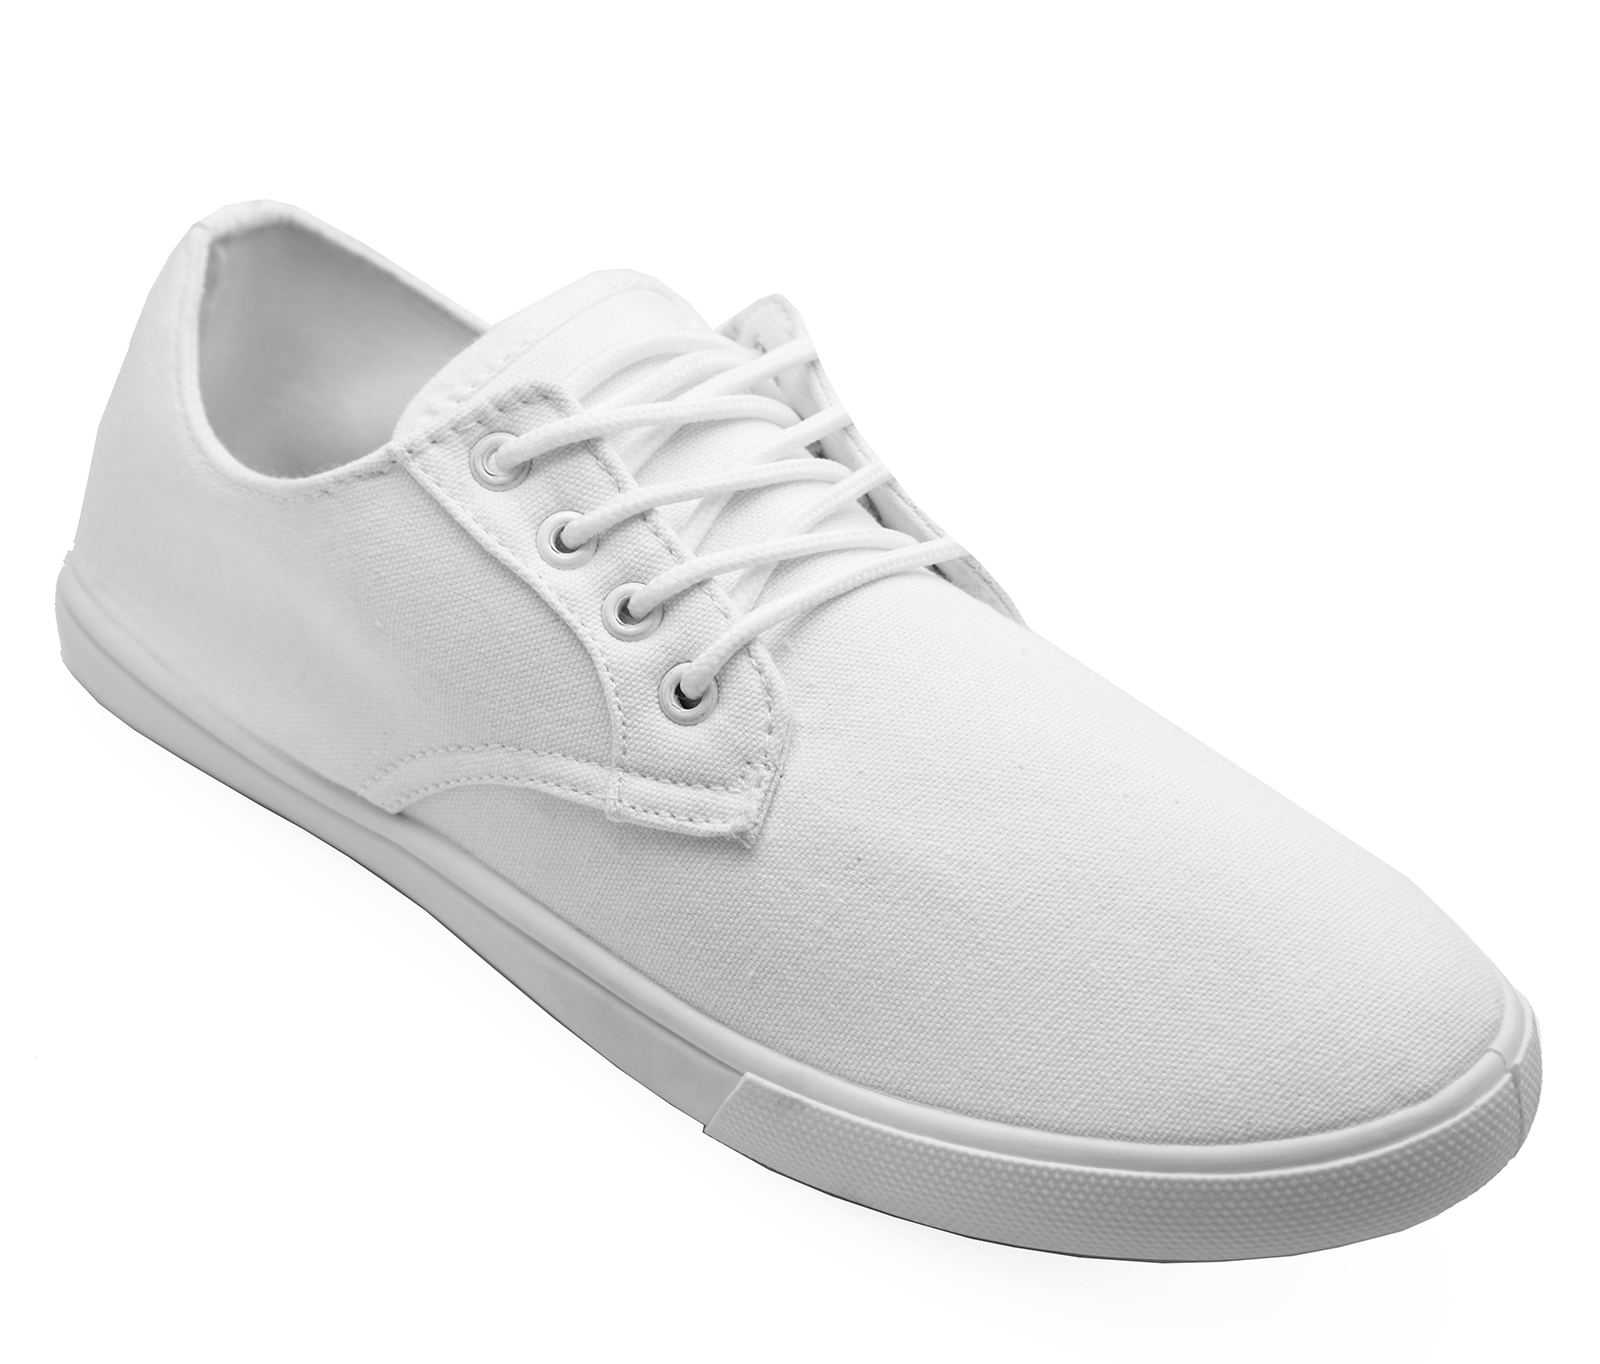 MENS-LACE-UP-WHITE-CANVAS-FLAT-TRAINER-PLIMSOLL-PUMPS-CASUAL-SHOES-SIZES-6-12 thumbnail 5